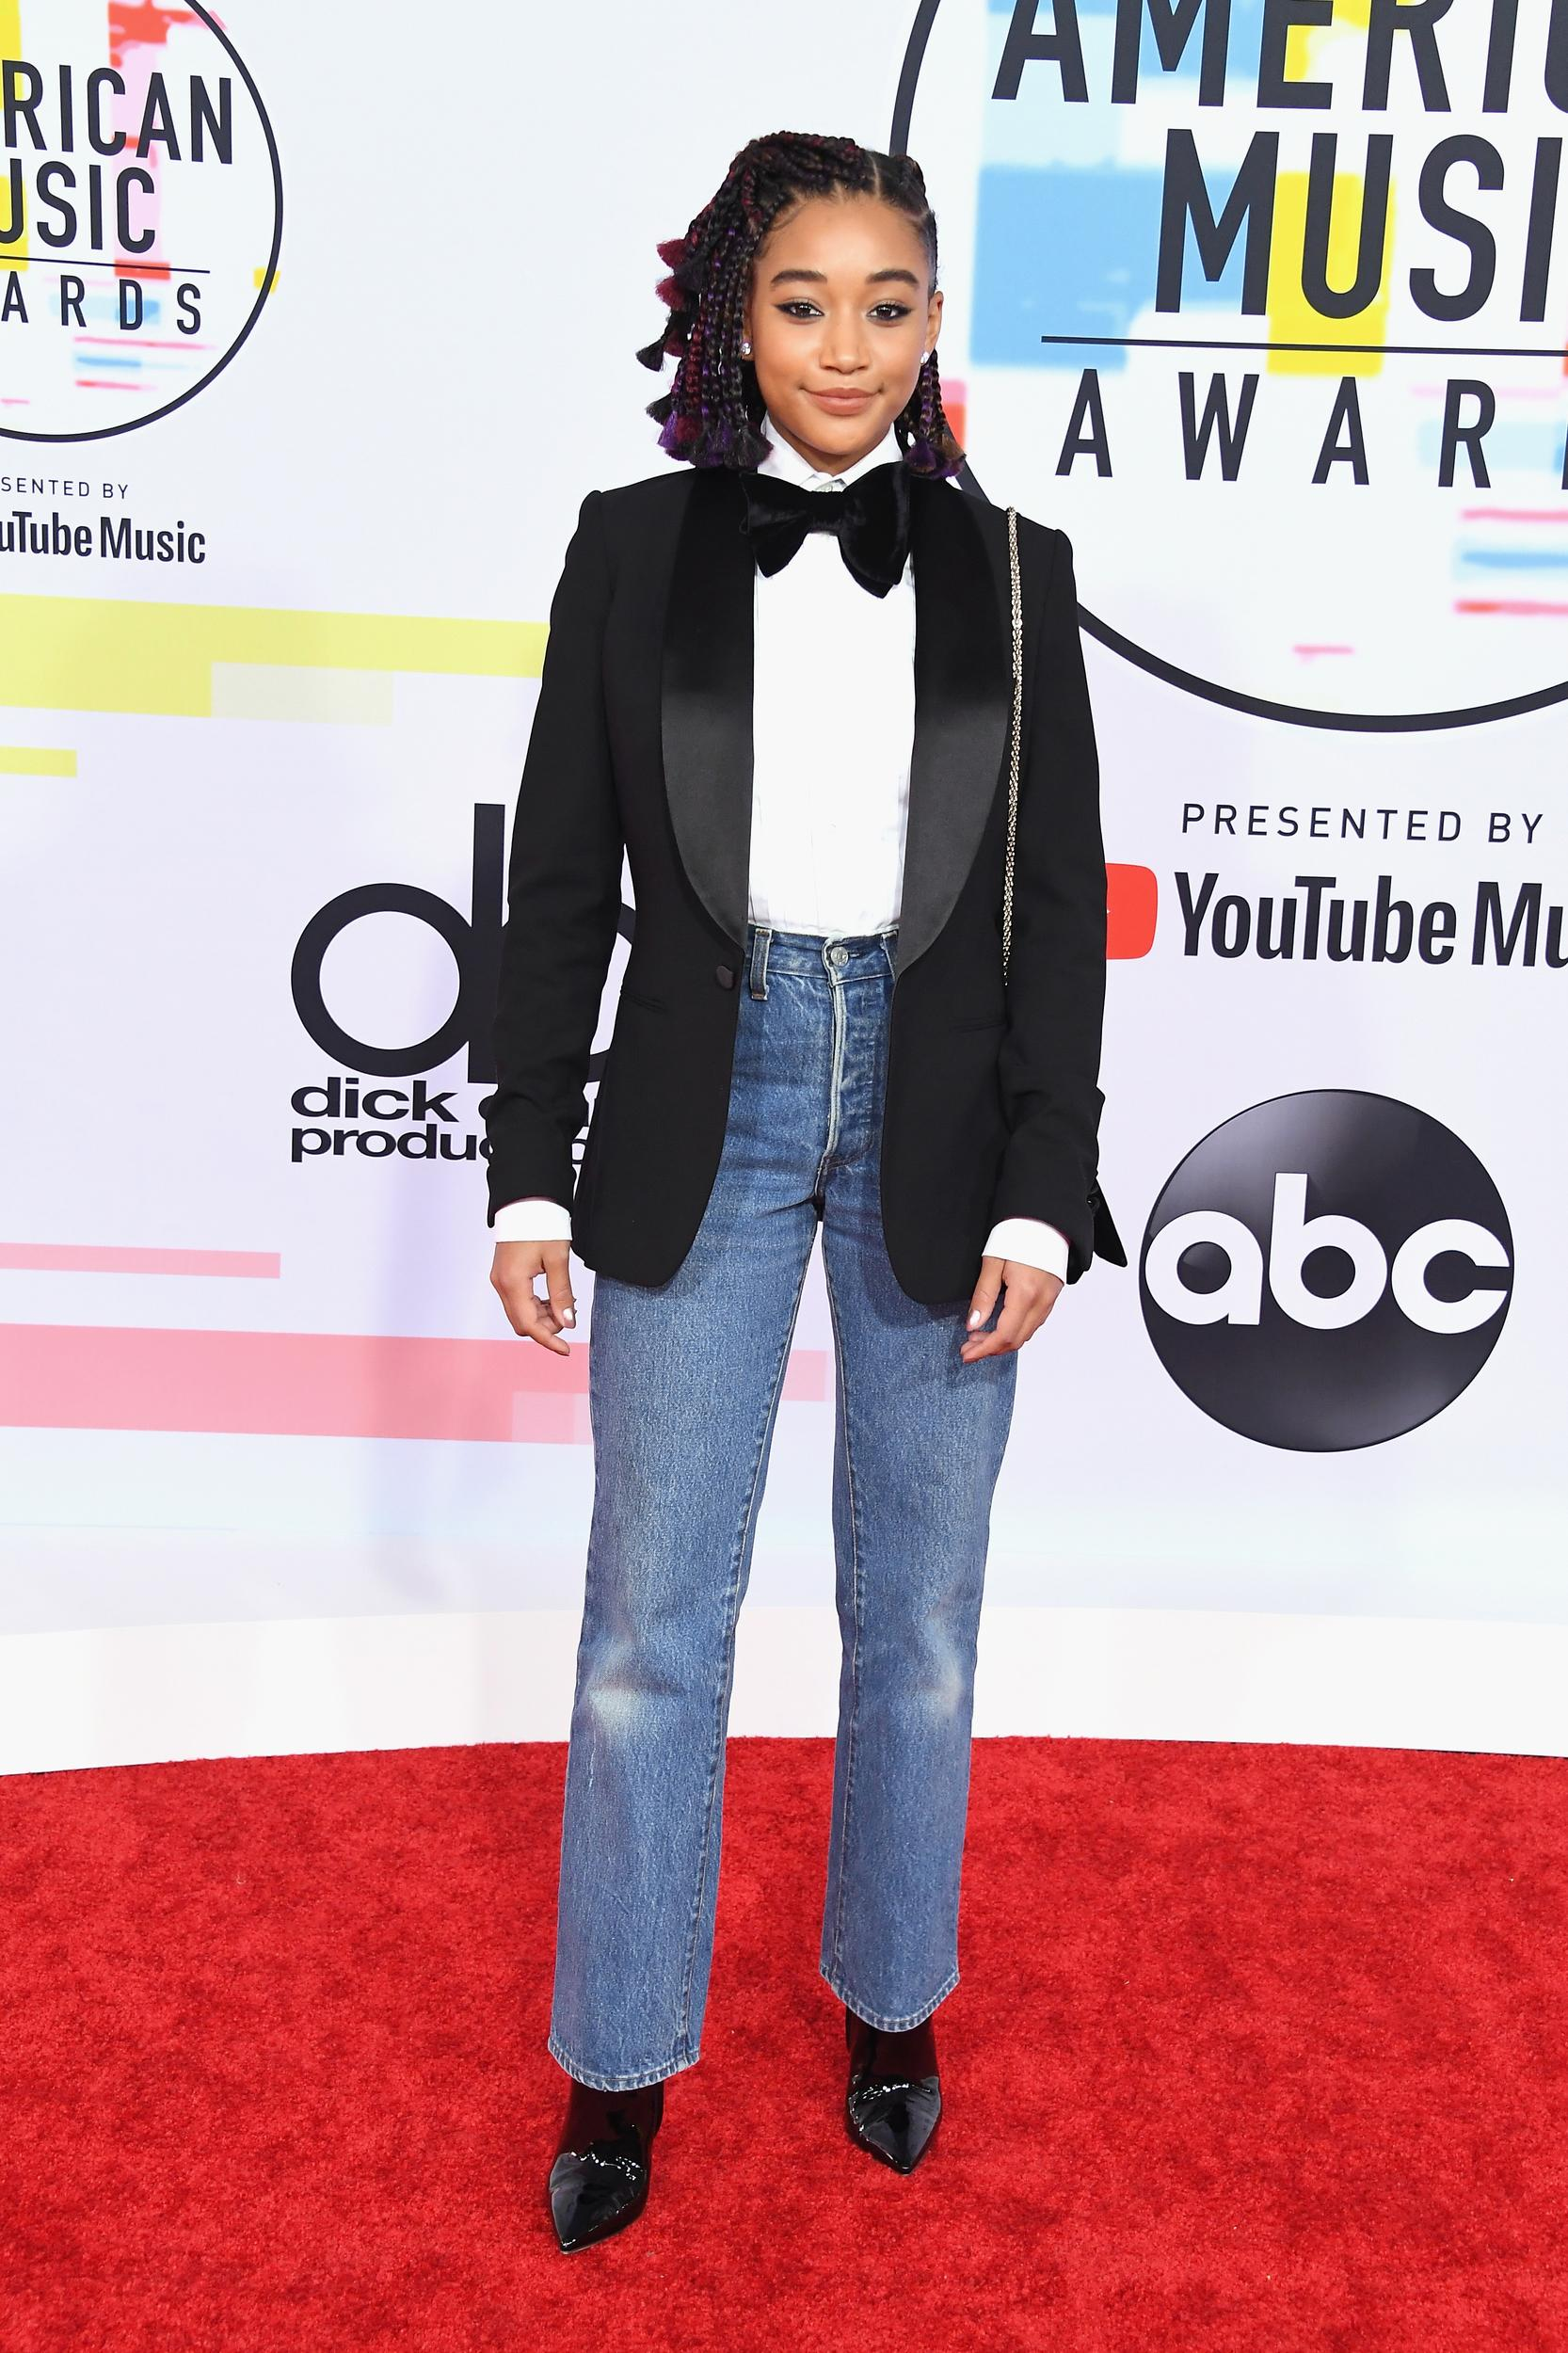 LOS ANGELES, CA - OCTOBER 09:  Amandla Stenberg attends the 2018 American Music Awards at Microsoft Theater on October 9, 2018 in Los Angeles, California.  (Photo by Steve Granitz/WireImage)